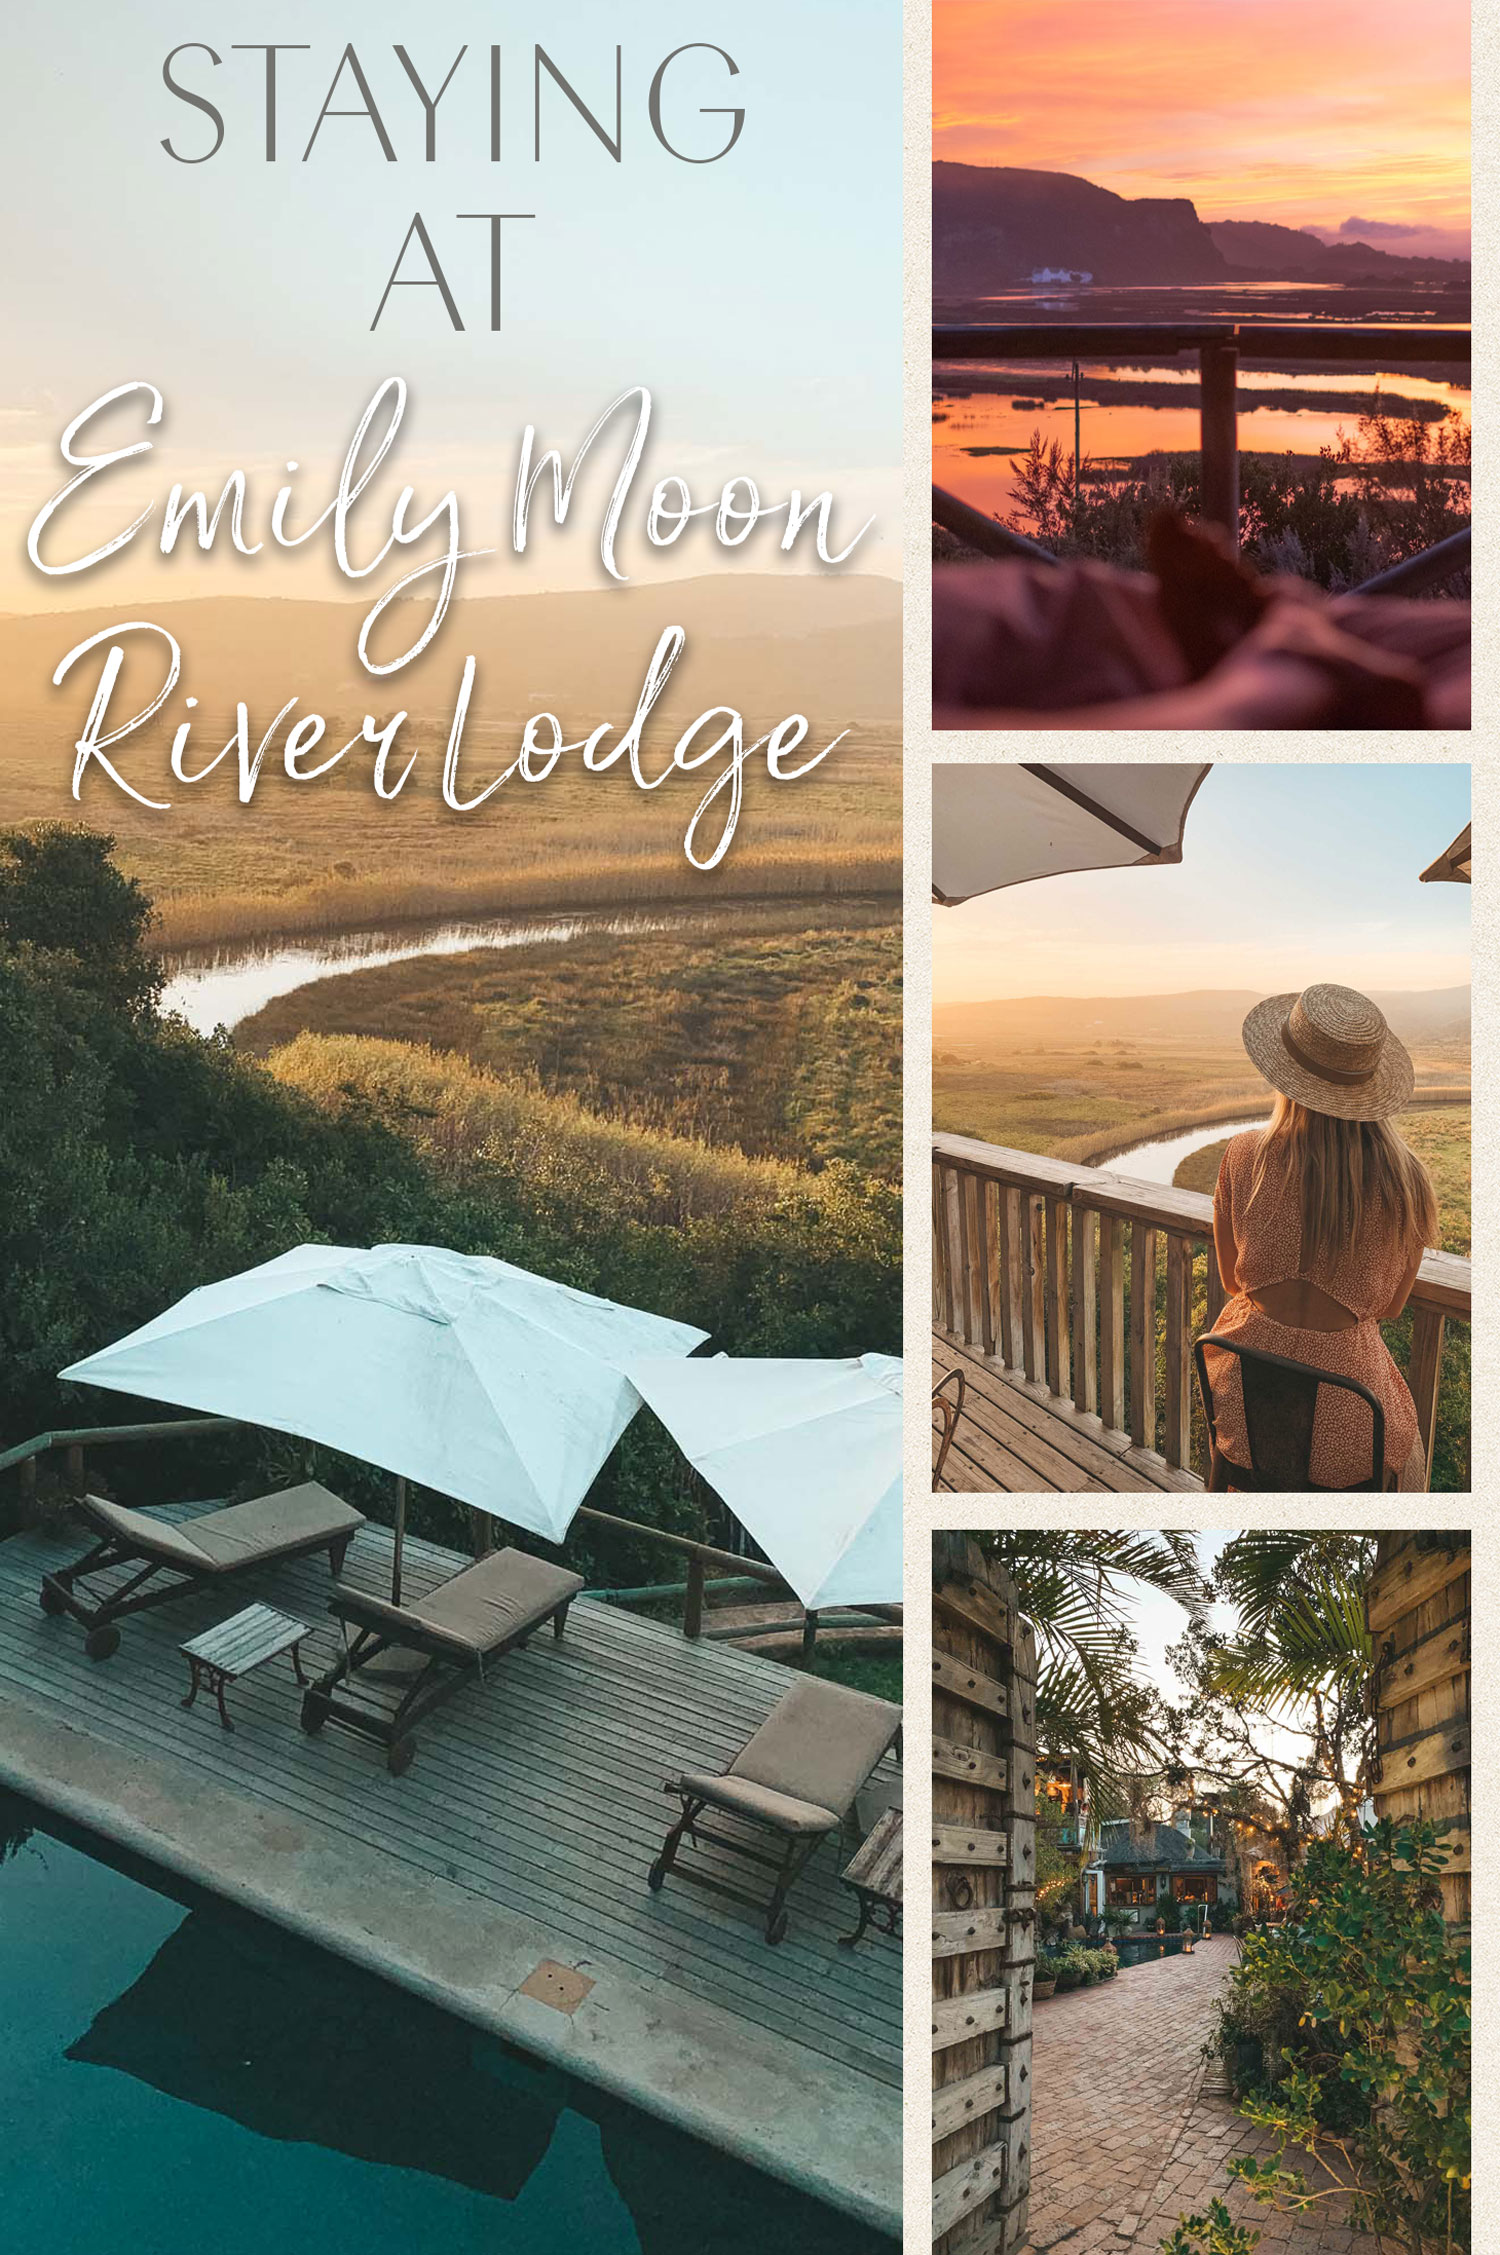 who stay at the Emily moon river lodge